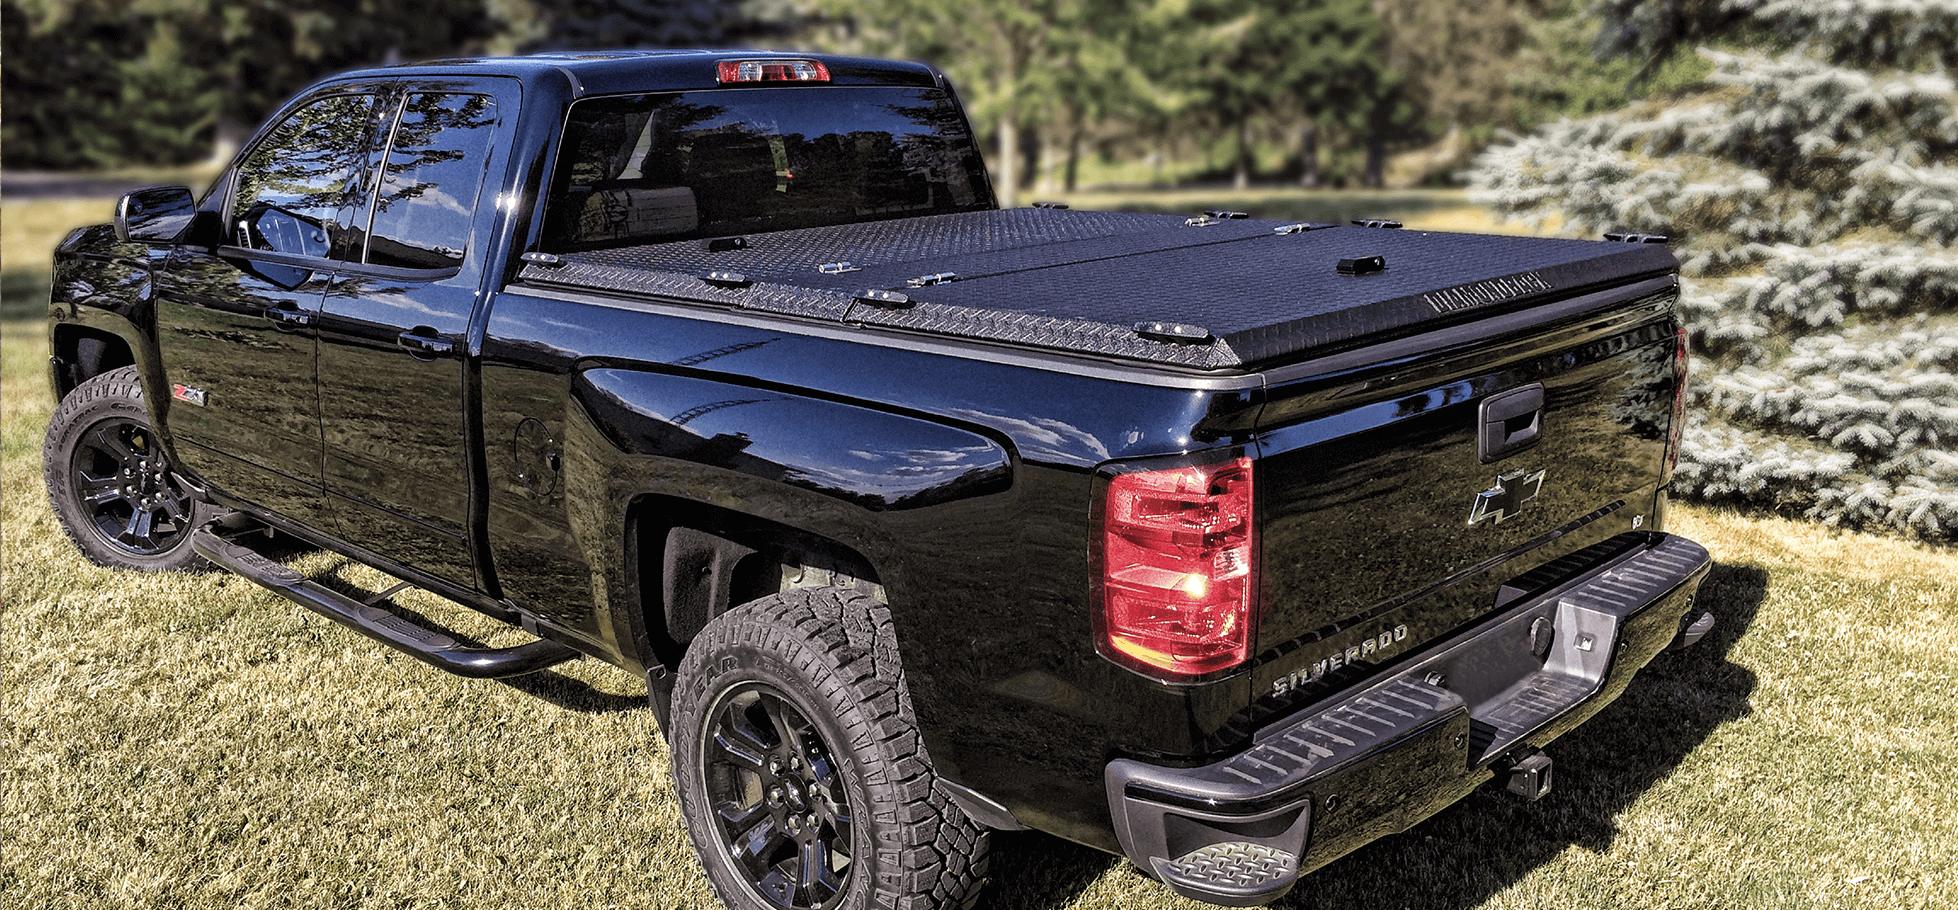 Diamondbackhd Truck Covers Truck Bed Covers Pickup Truck Bed Covers